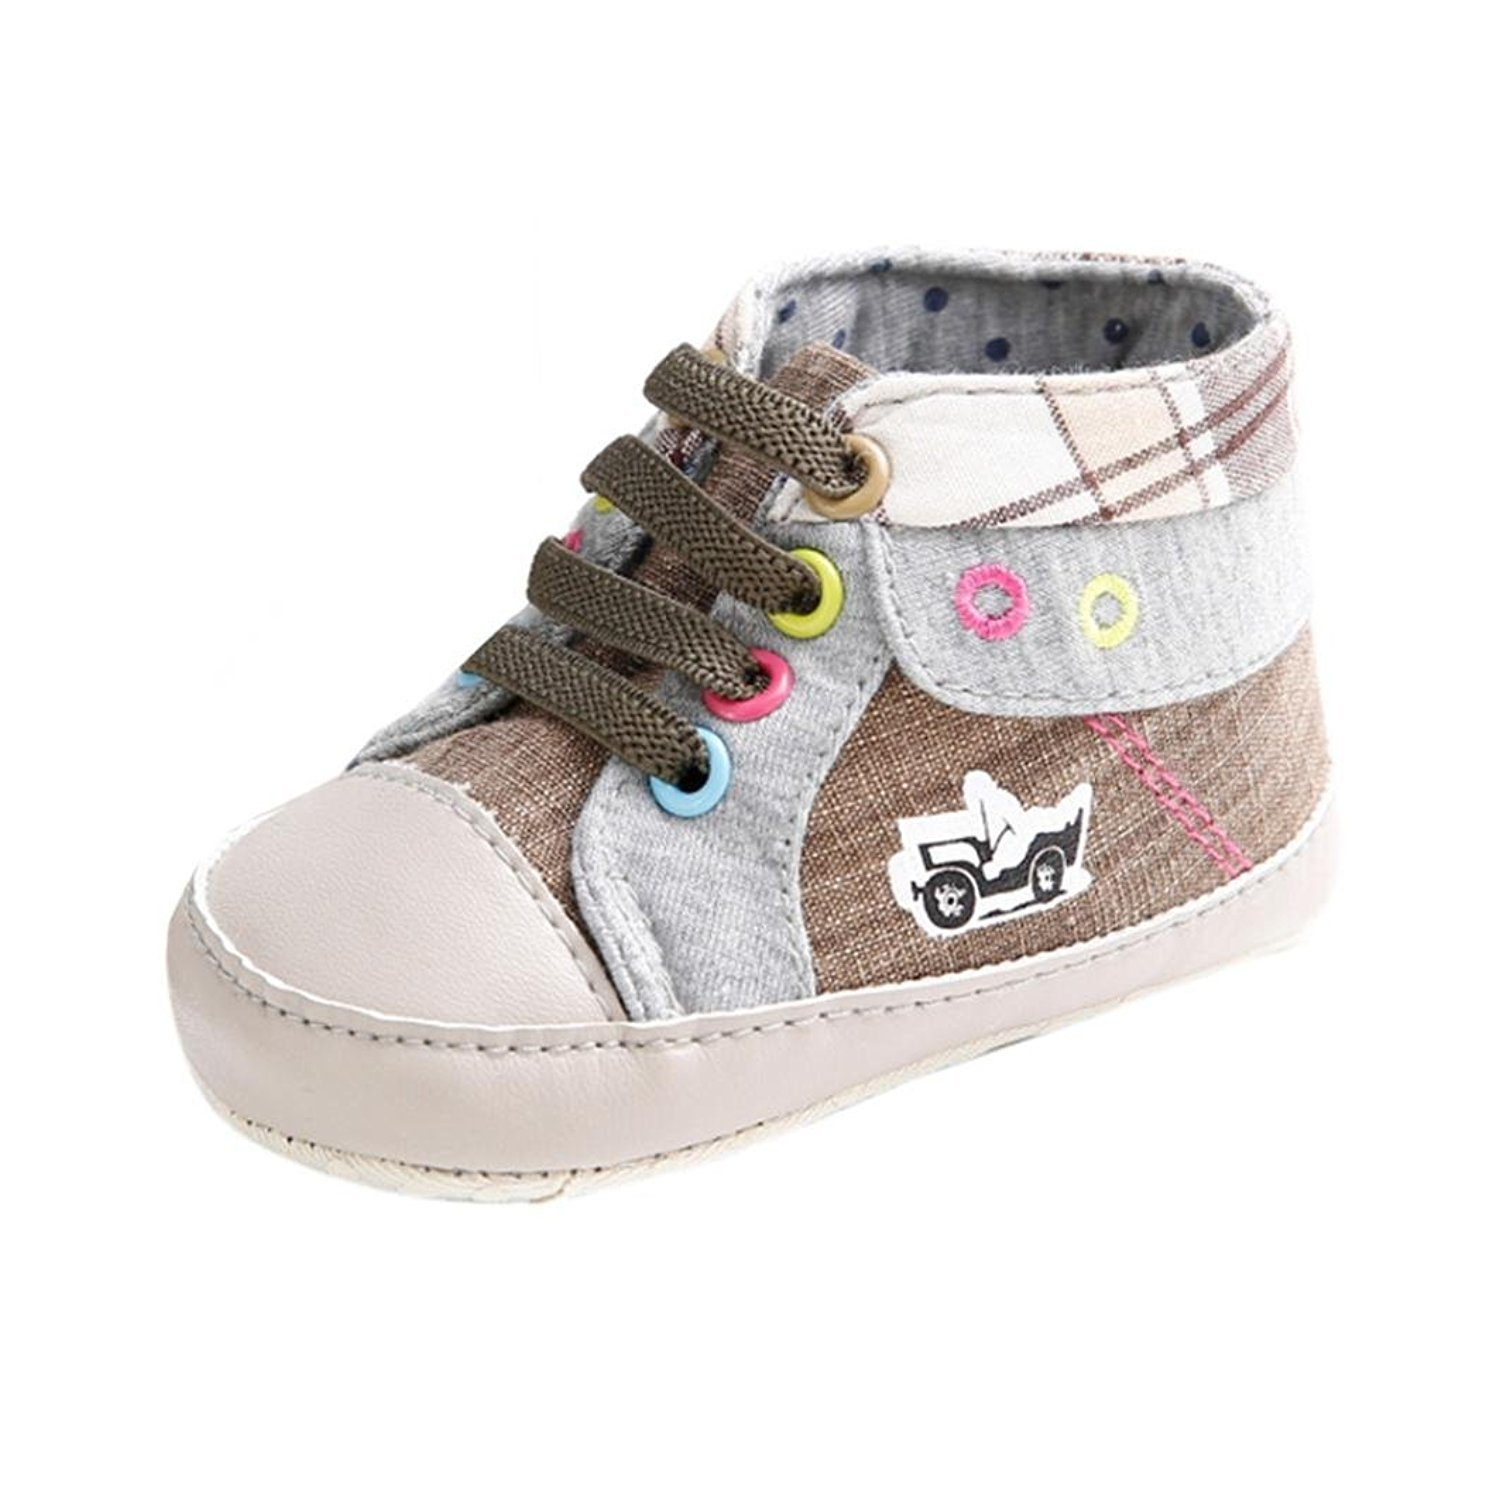 Unisex Canvas Shoes High Cut Baby Girl